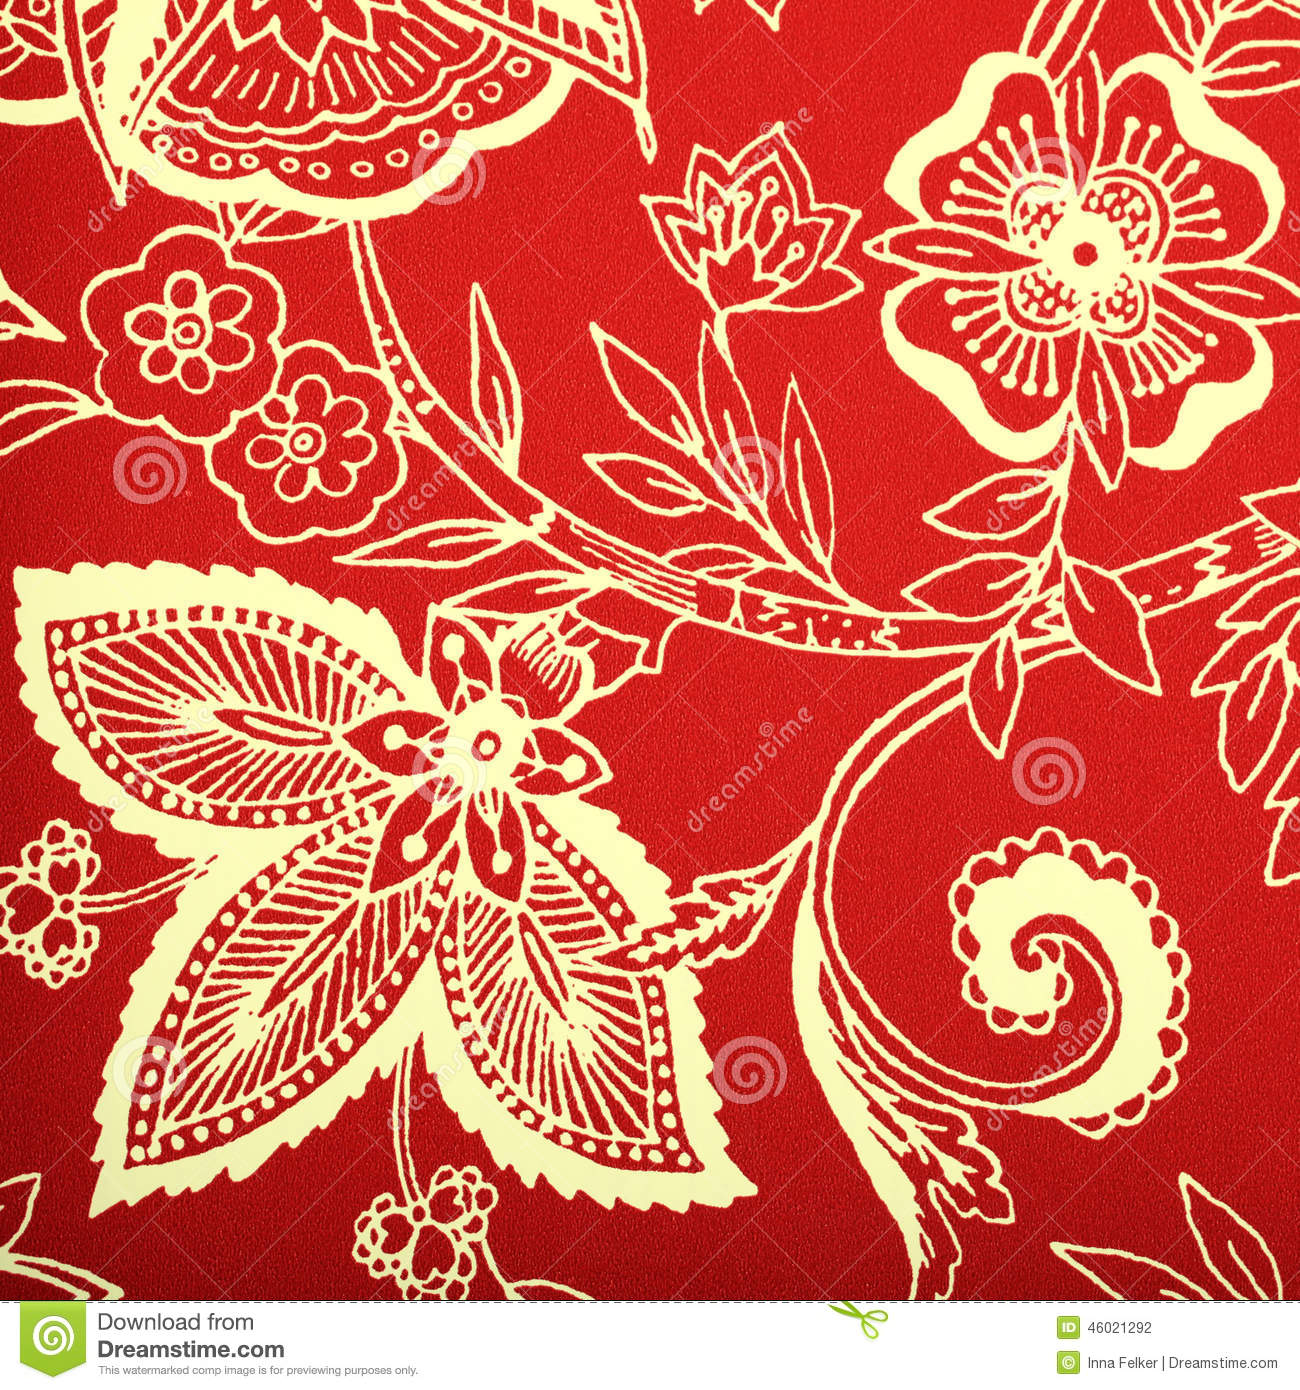 Victorian wallpaper pattern red - photo#20